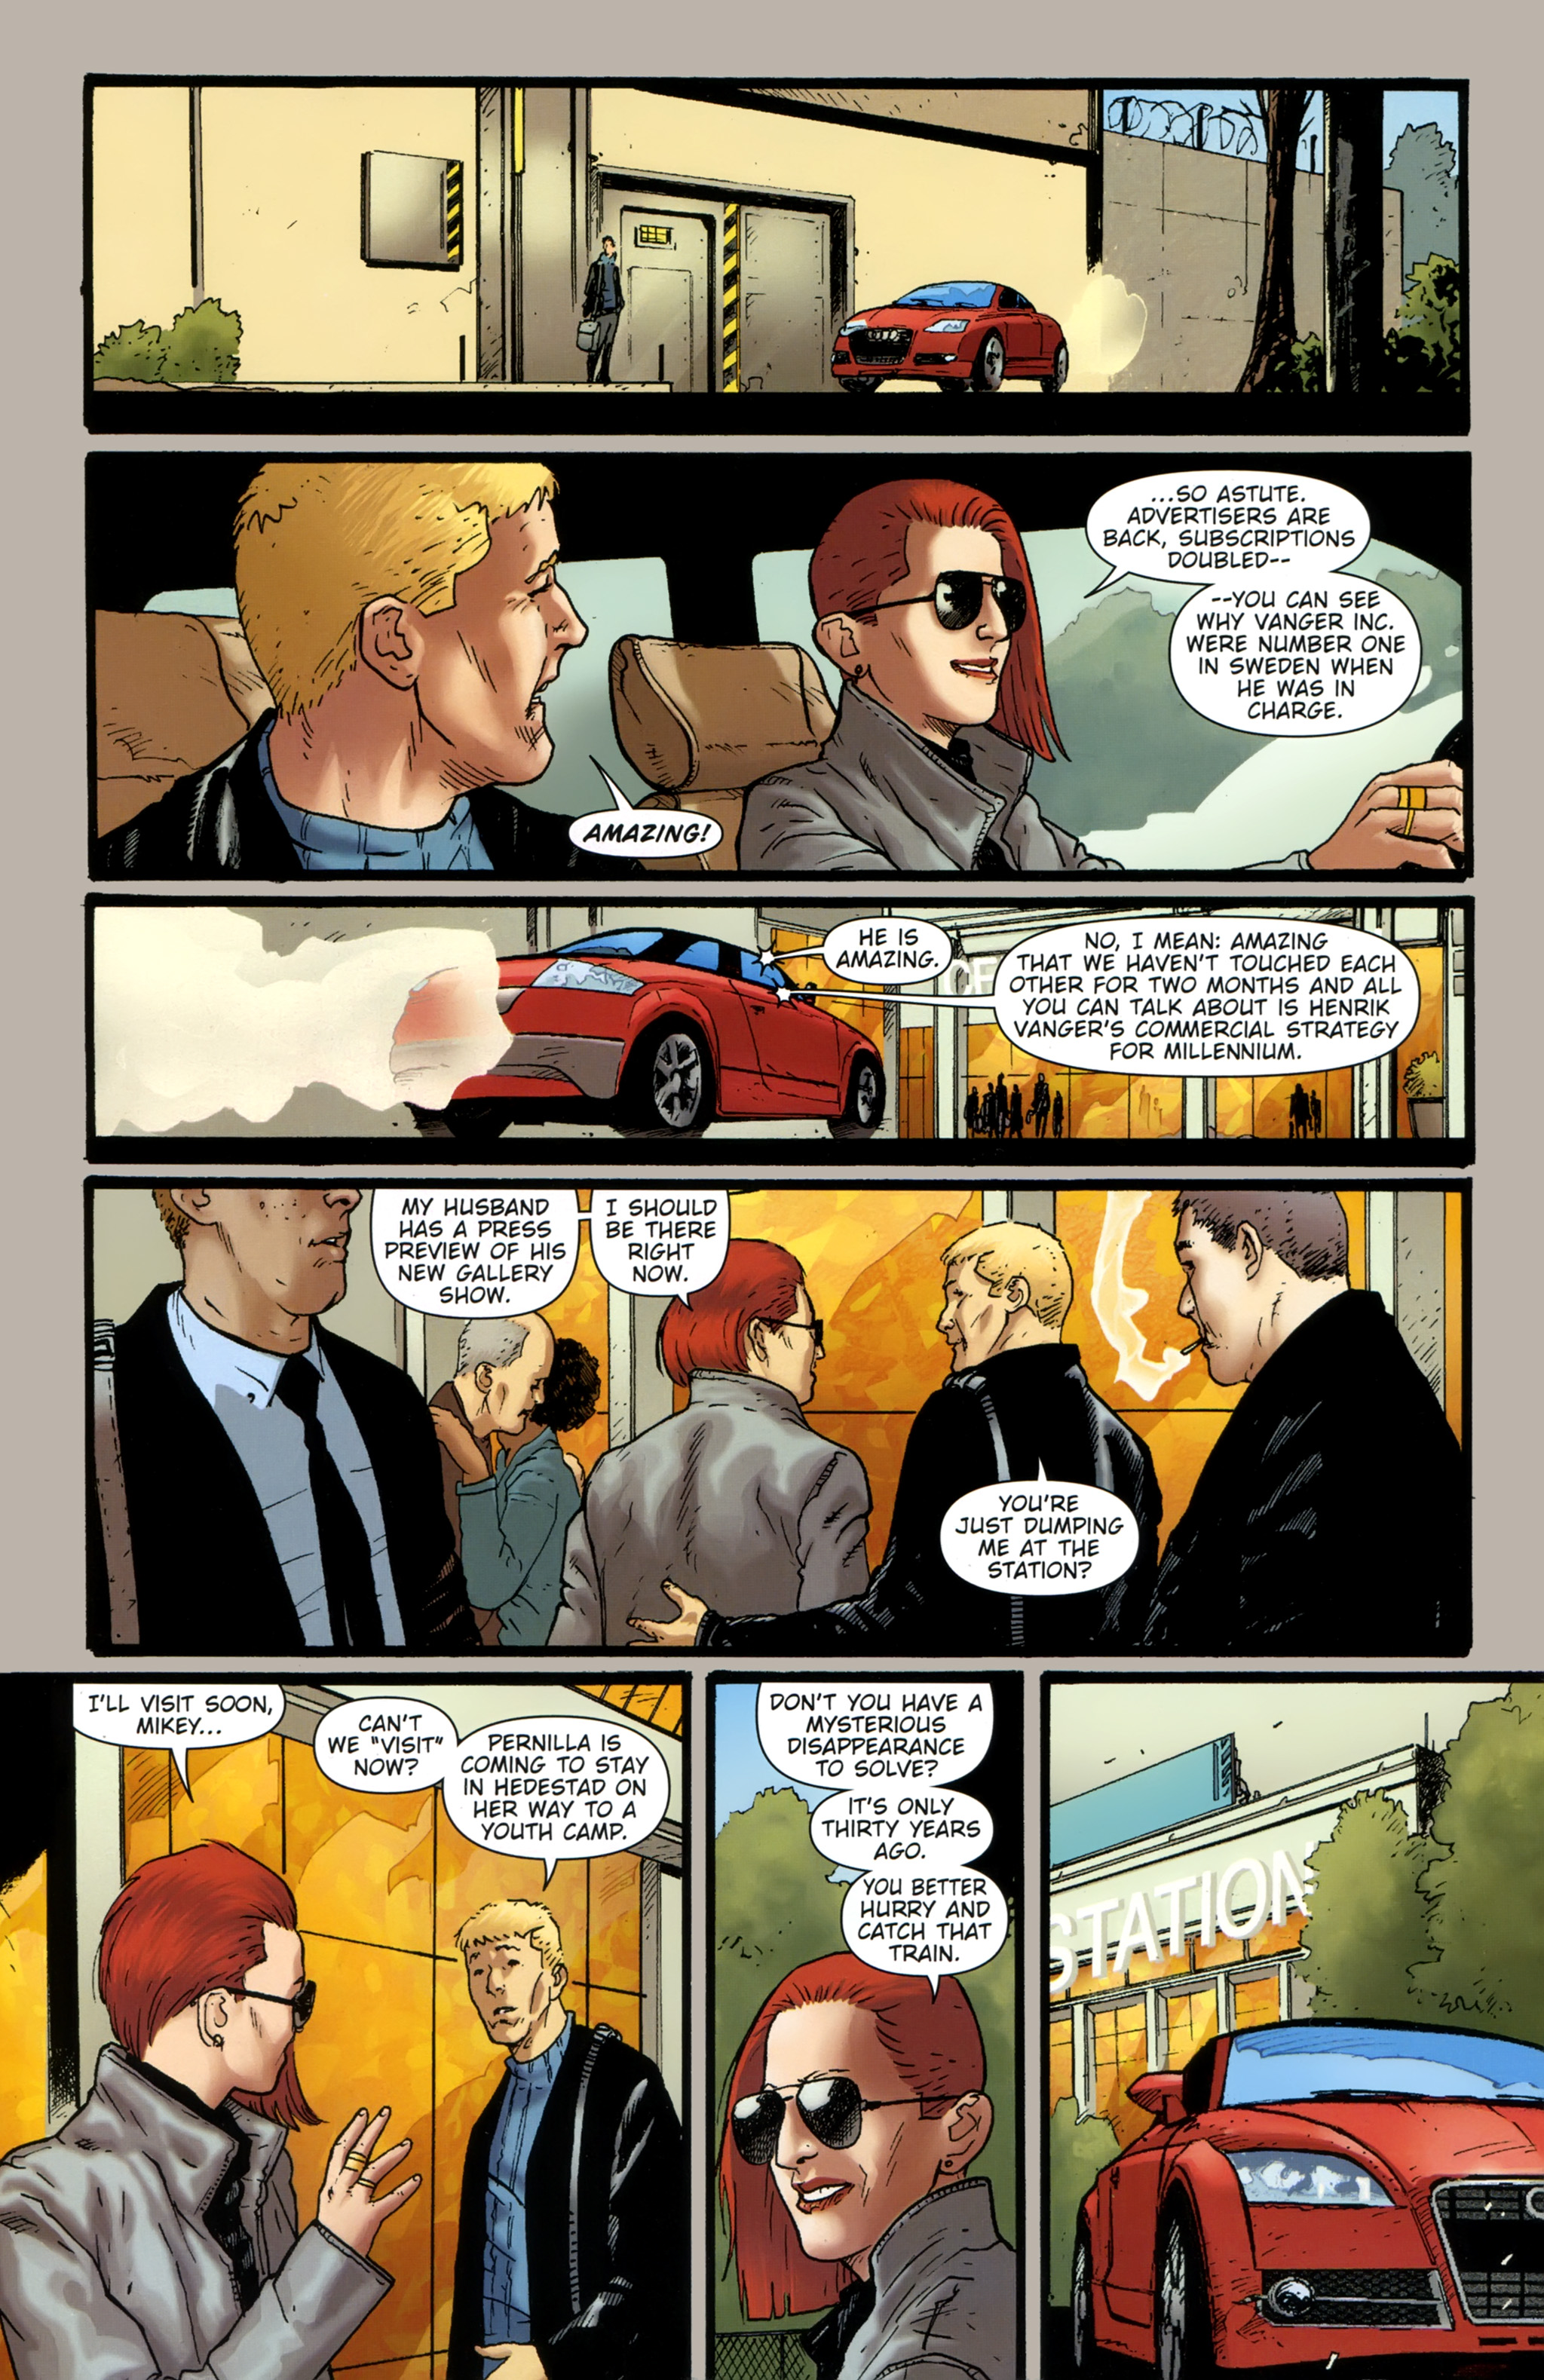 Read online The Girl With the Dragon Tattoo comic -  Issue # TPB 2 - 13